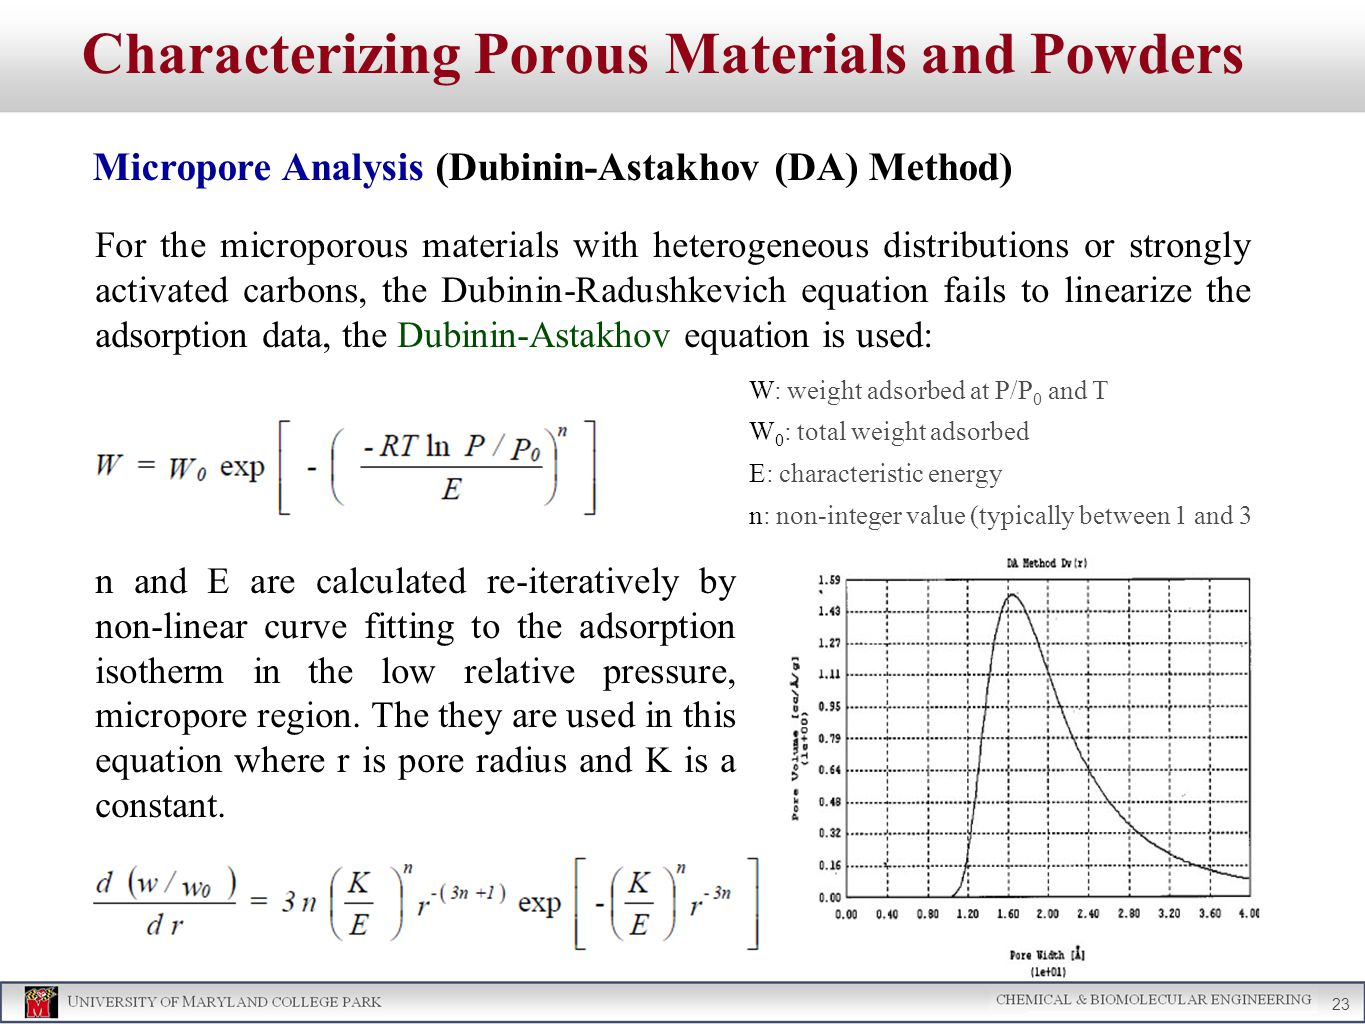 Characterizing Porous Materials and Powders Micropore Analysis (Dubinin-Astakhov (DA) Method) 23 For the microporous materials with heterogeneous distributions or strongly activated carbons, the Dubinin-Radushkevich equation fails to linearize the adsorption data, the Dubinin-Astakhov equation is used: n and E are calculated re-iteratively by non-linear curve fitting to the adsorption isotherm in the low relative pressure, micropore region.